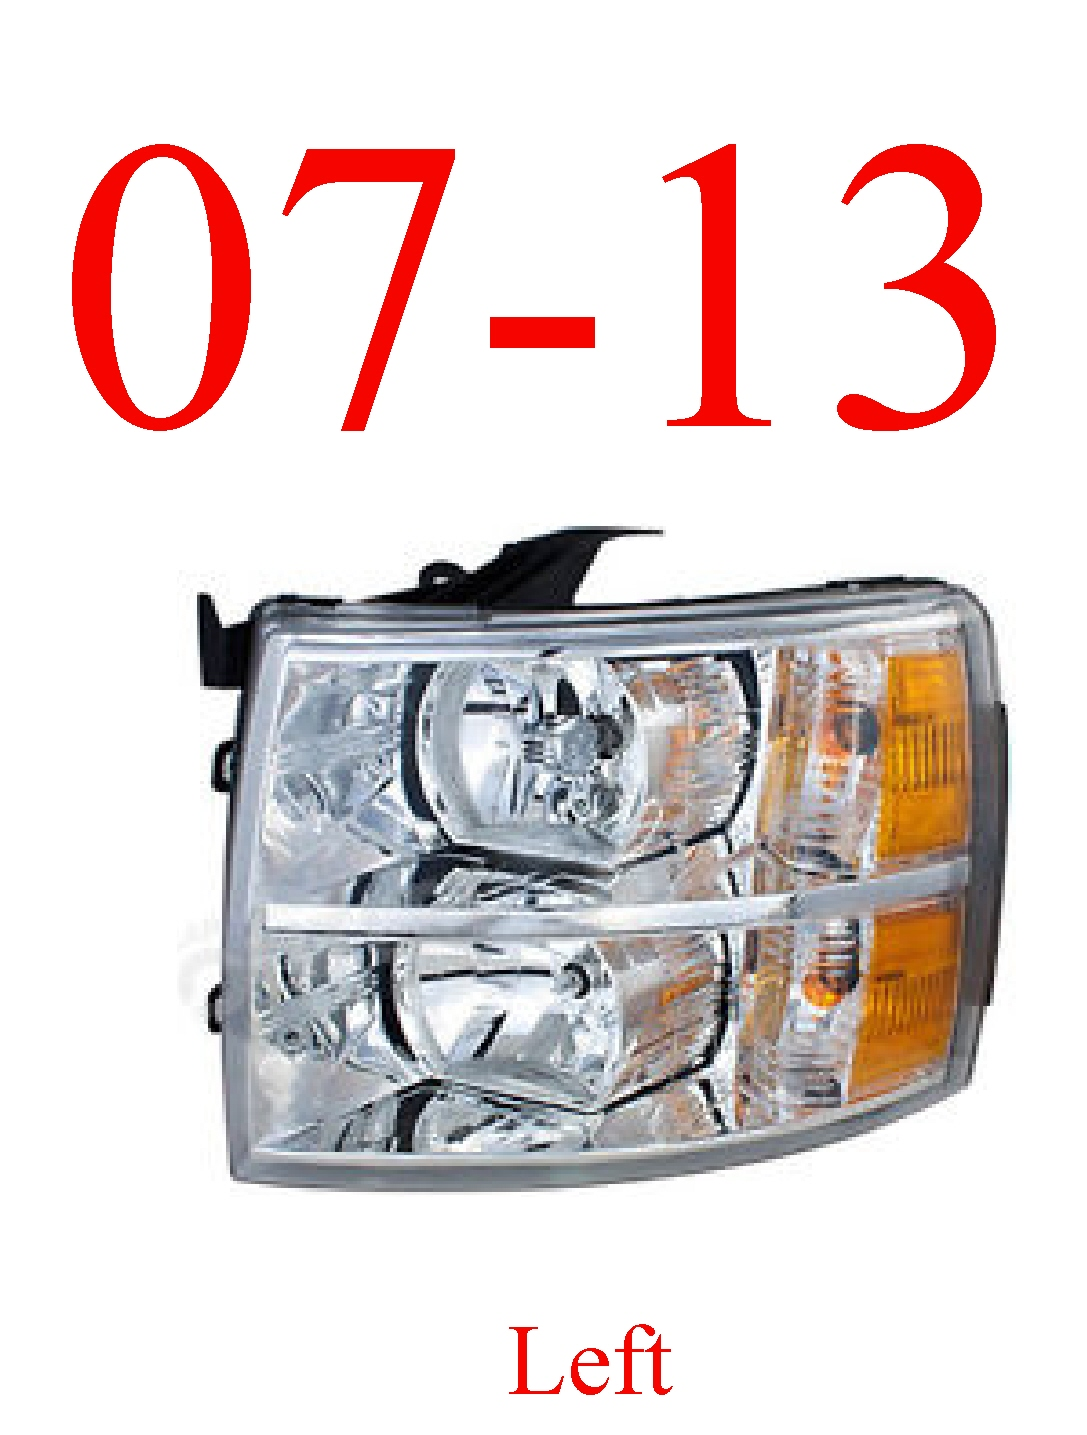 07-13 Chevy Left Head Light Assembly